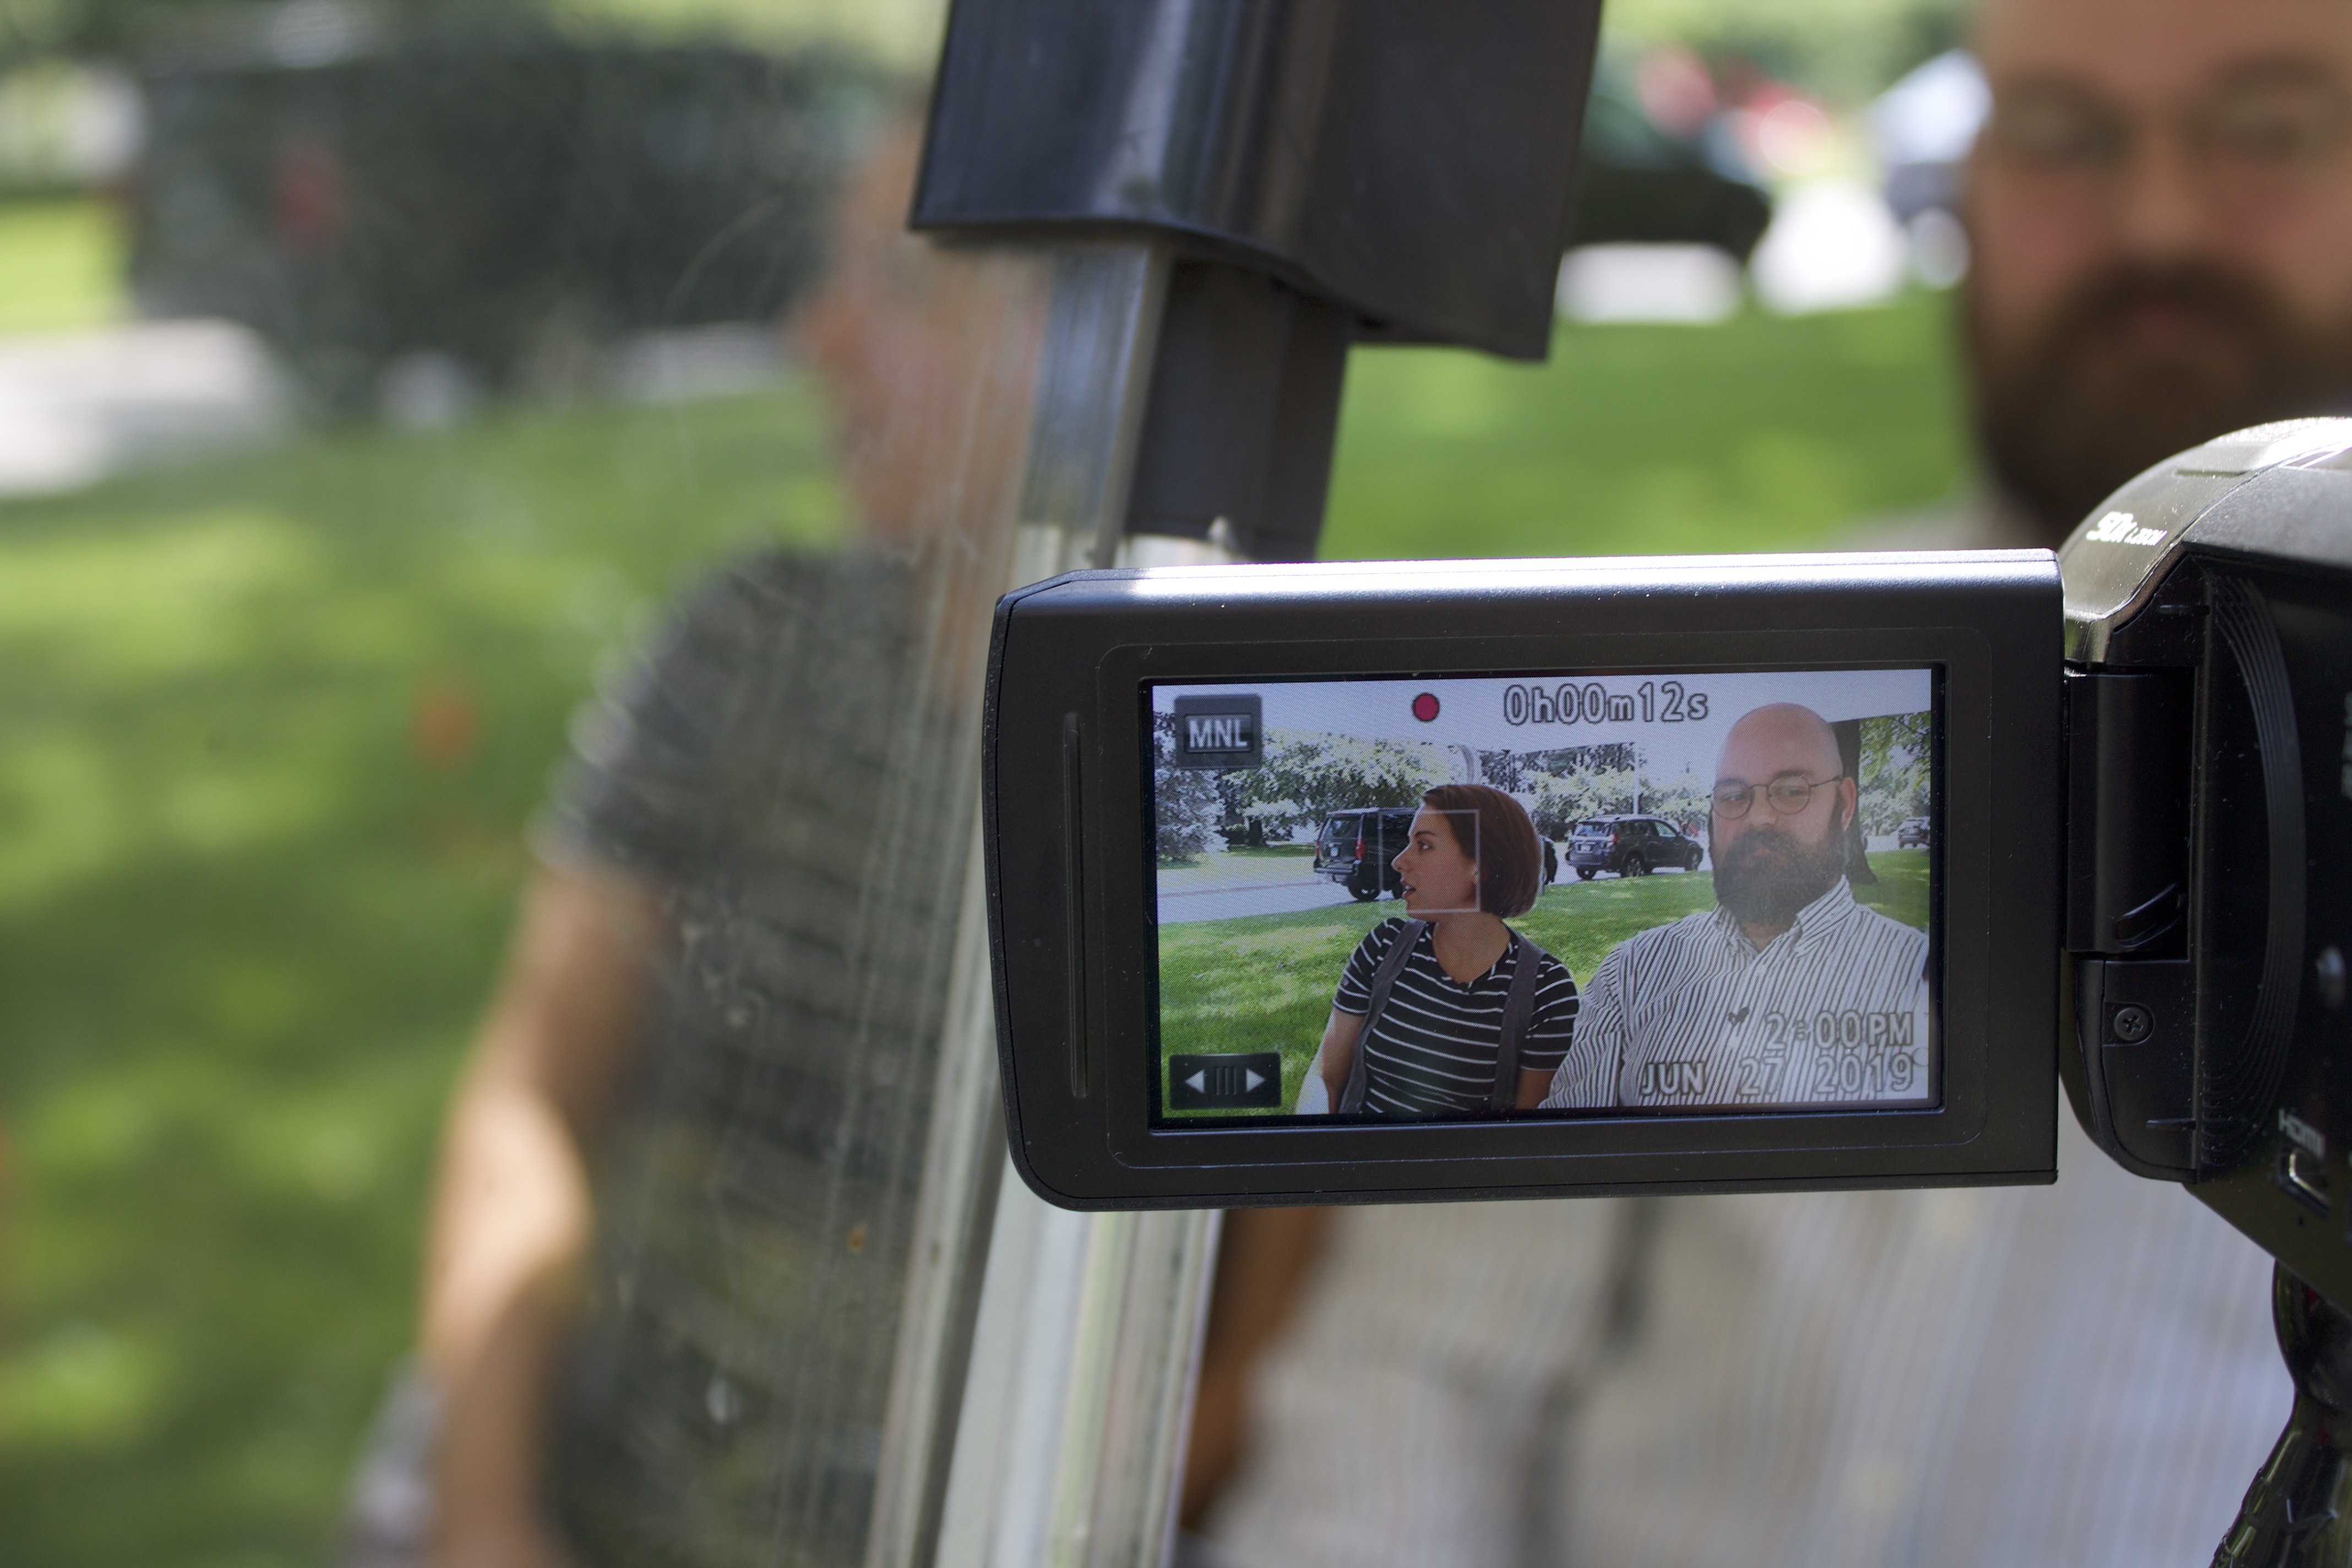 Image for Episode filming in progress: while Jess and Tony converse in a moving golf cart, members of the production team capture the filming underway in the camera